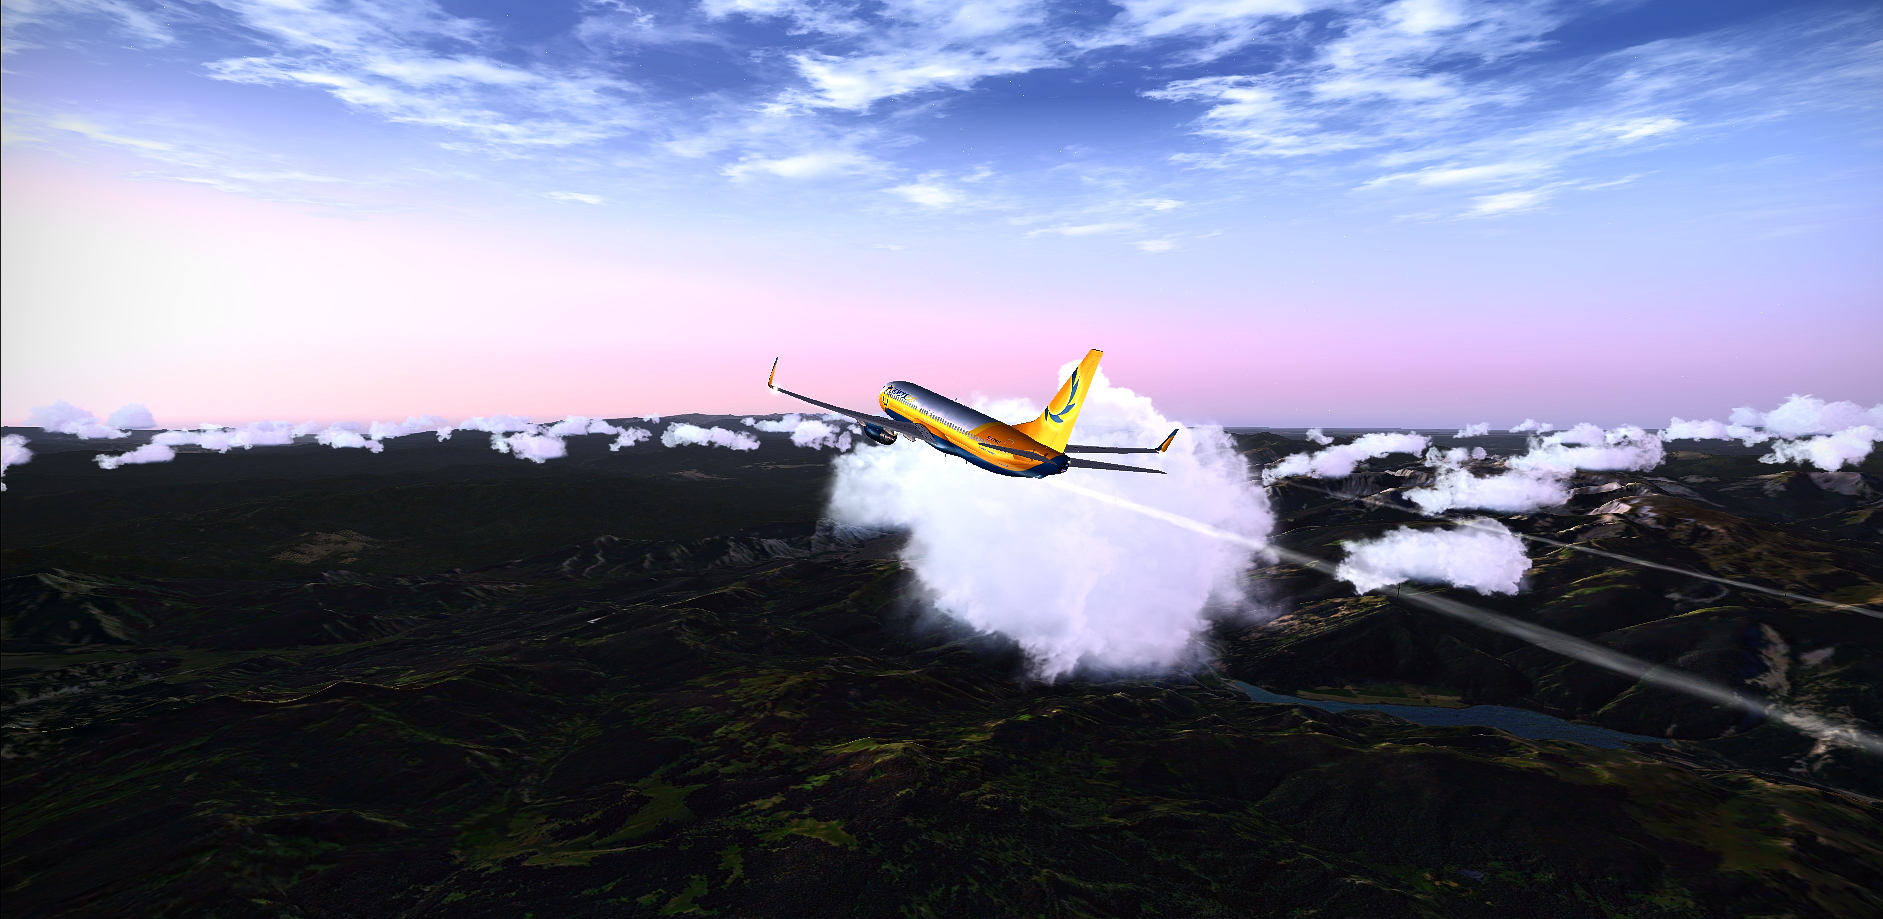 Fsx Above The Mountains